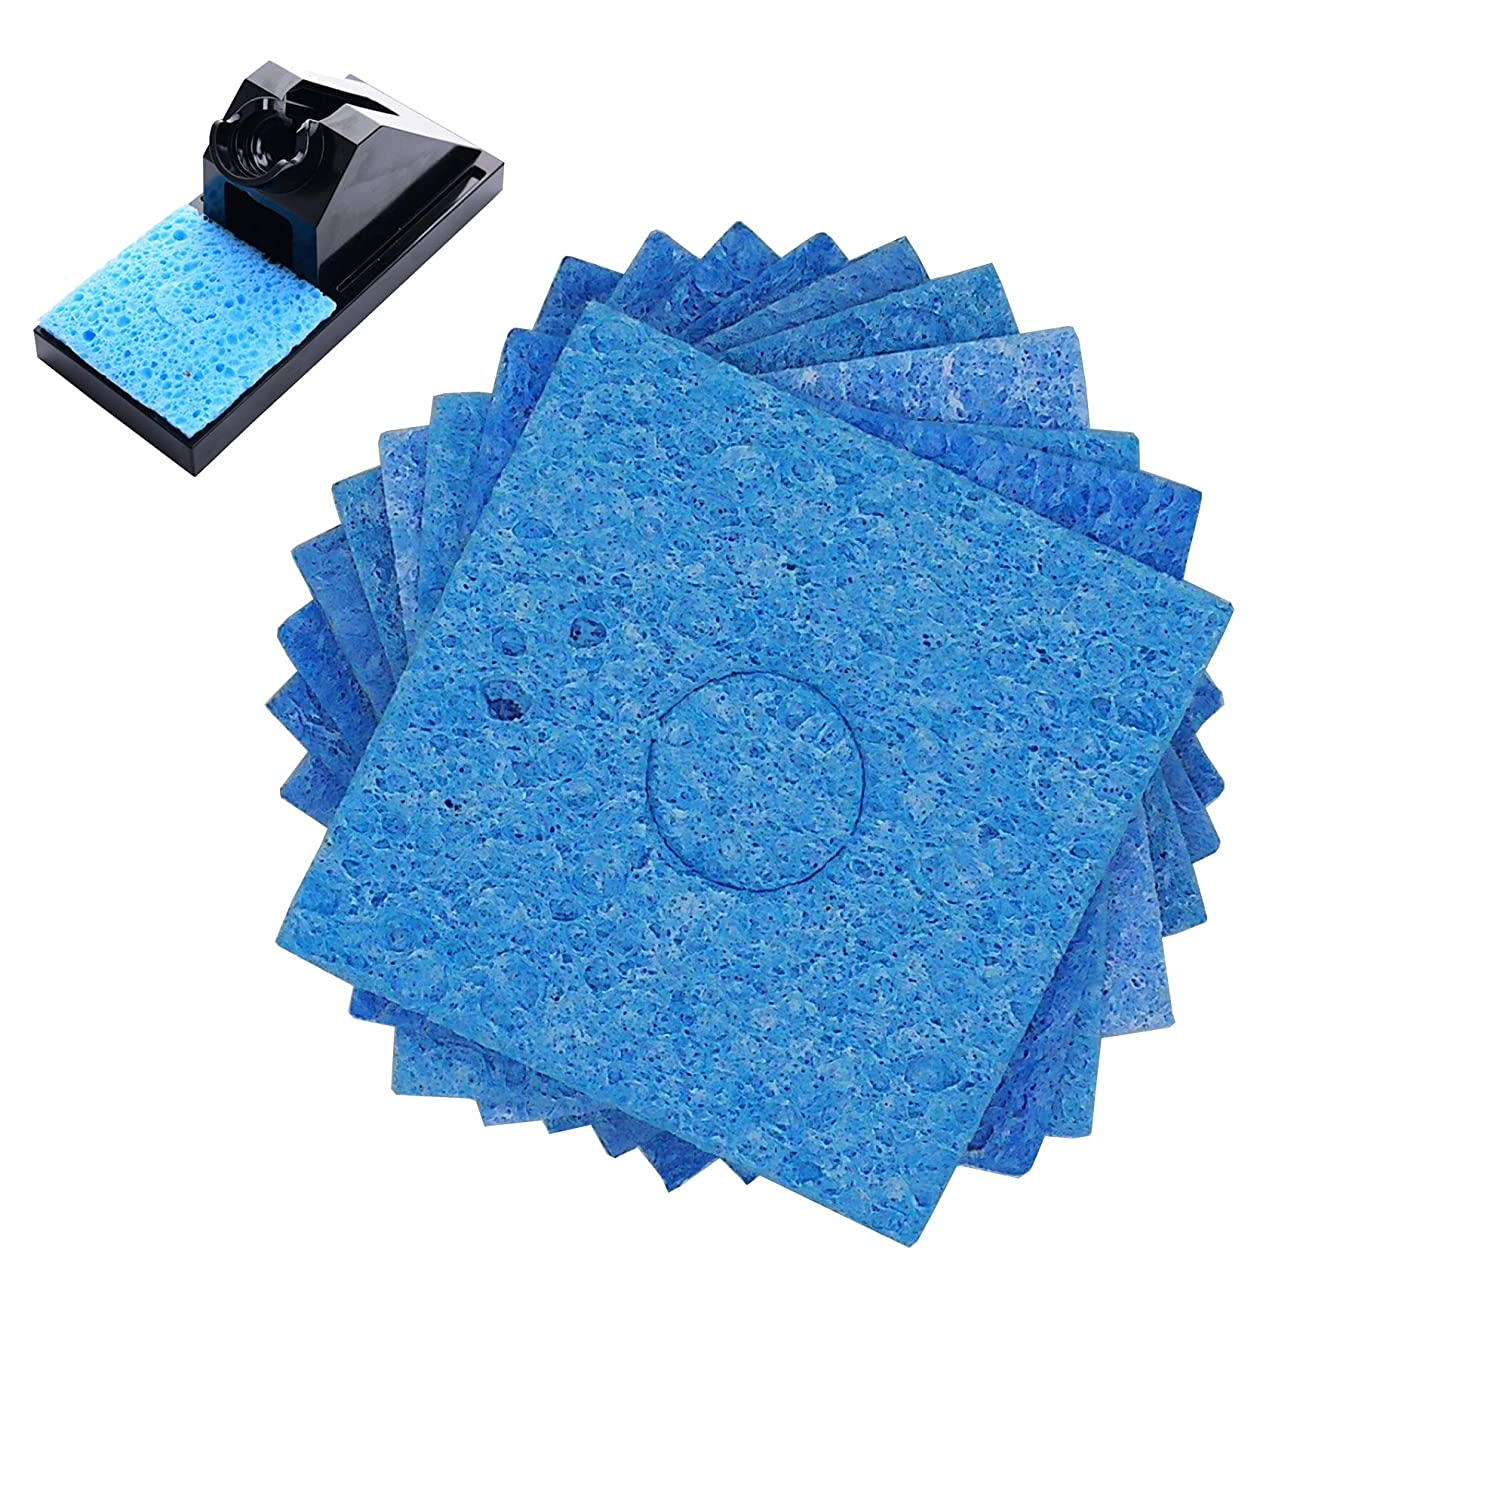 BCQLI 10 Pcs Soldering iron special high temperature sponge, With holes 60mm x 60mm x 1mm, Blue